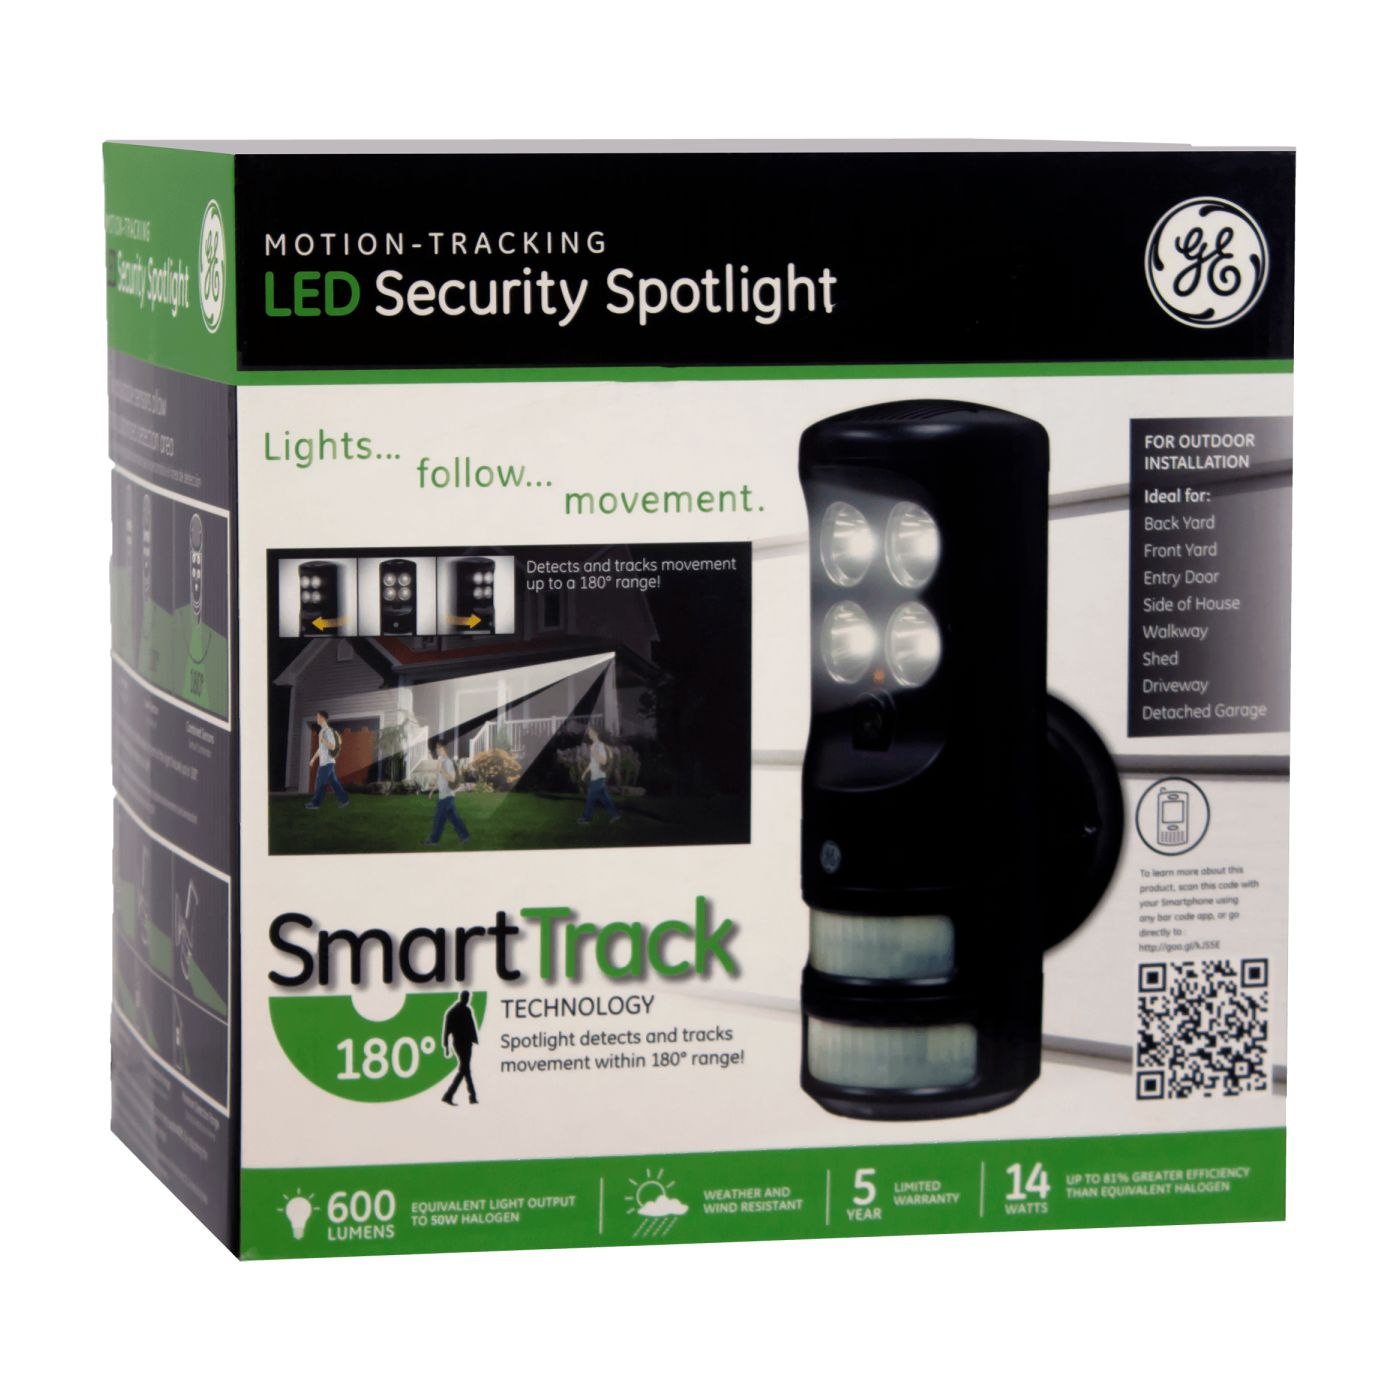 Ge motion tracking led security spotlight mozeypictures Gallery